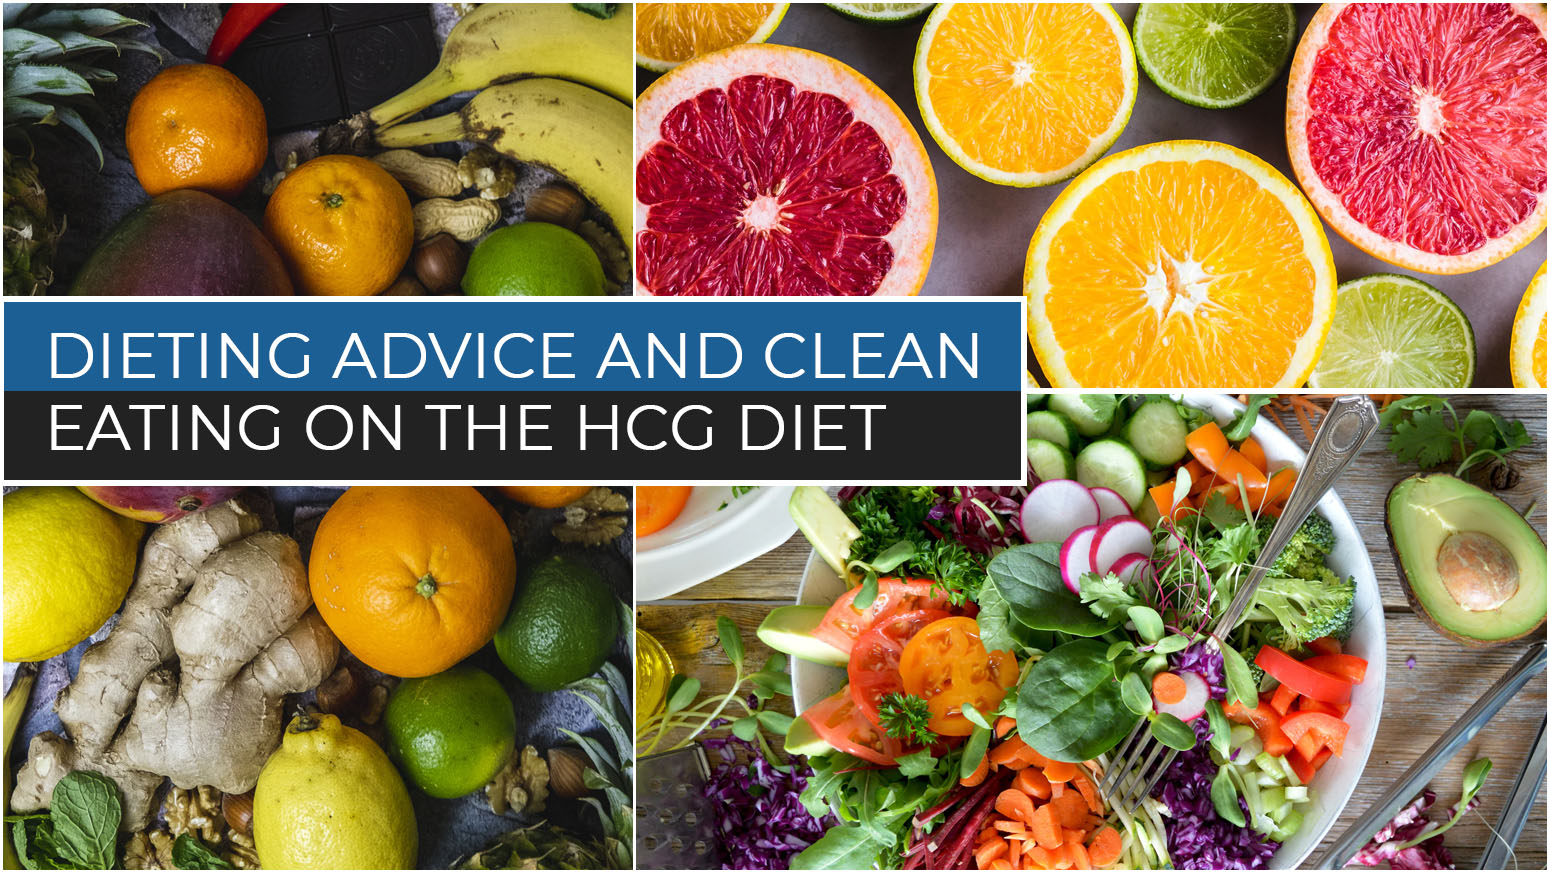 DIETING ADVICE AND CLEAN EATING ON THE HCG DIET